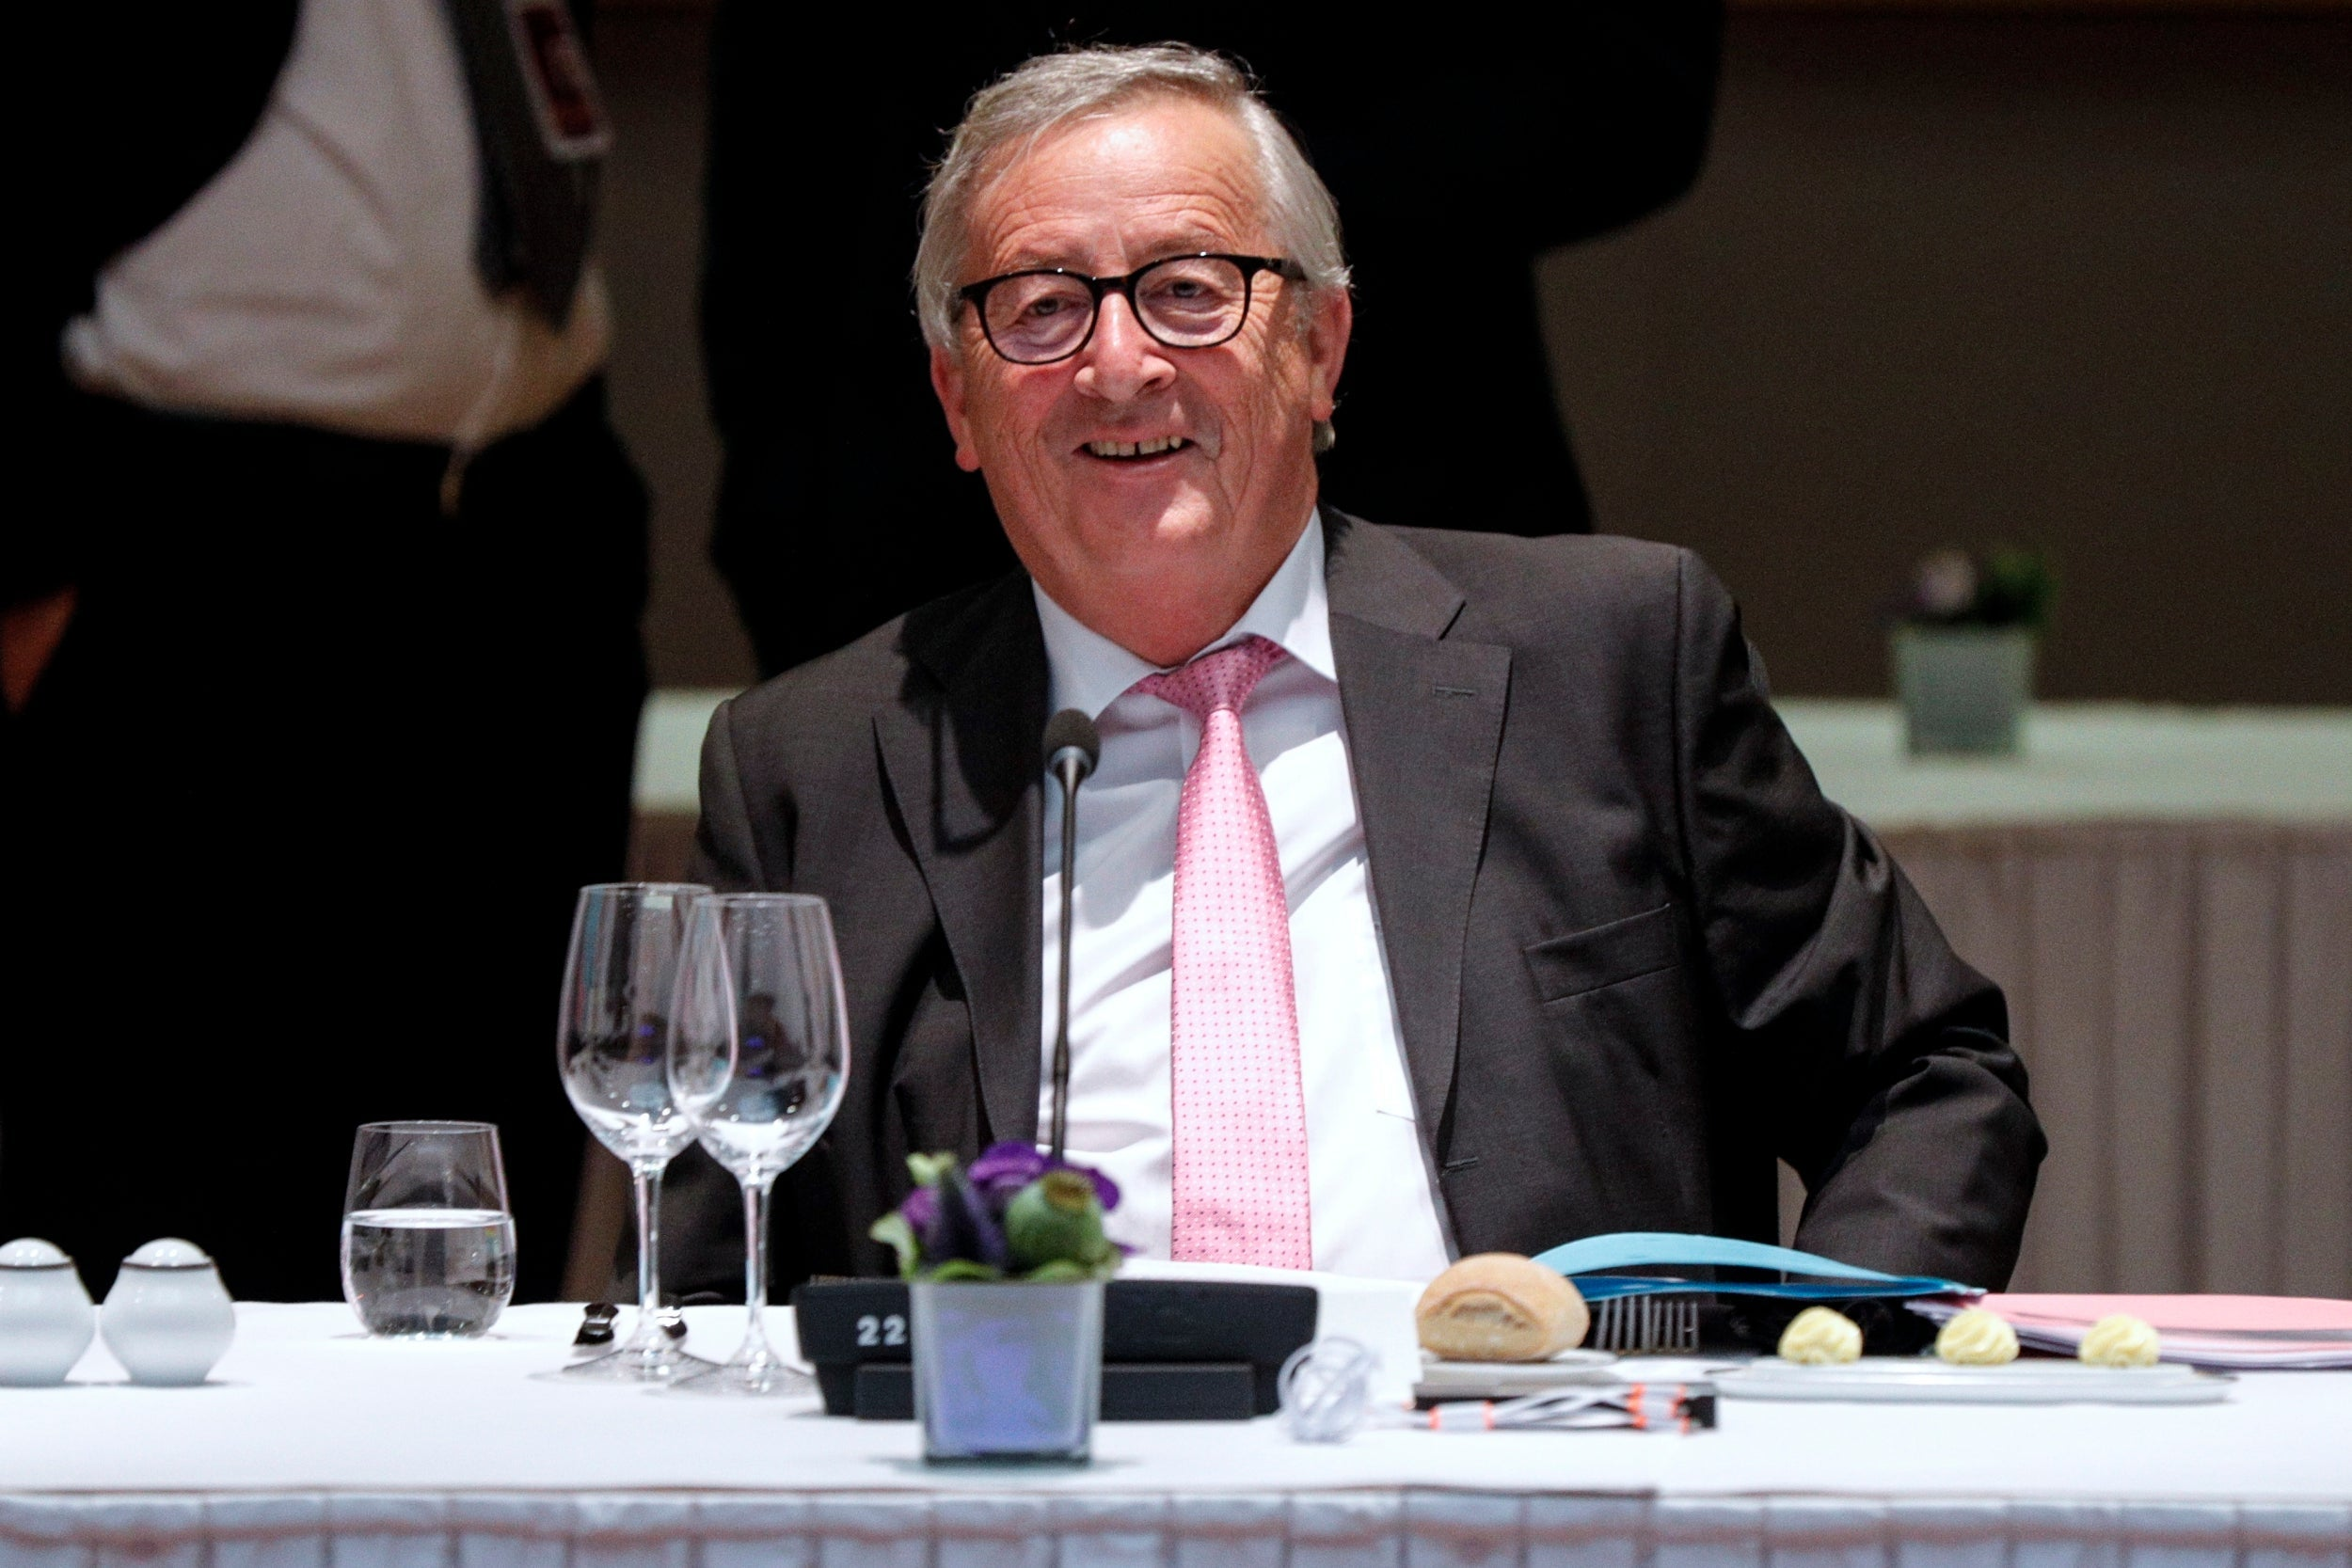 EU summit: Talks stall as leaders argue into early hours over Jean-Claude Juncker's replacement 9